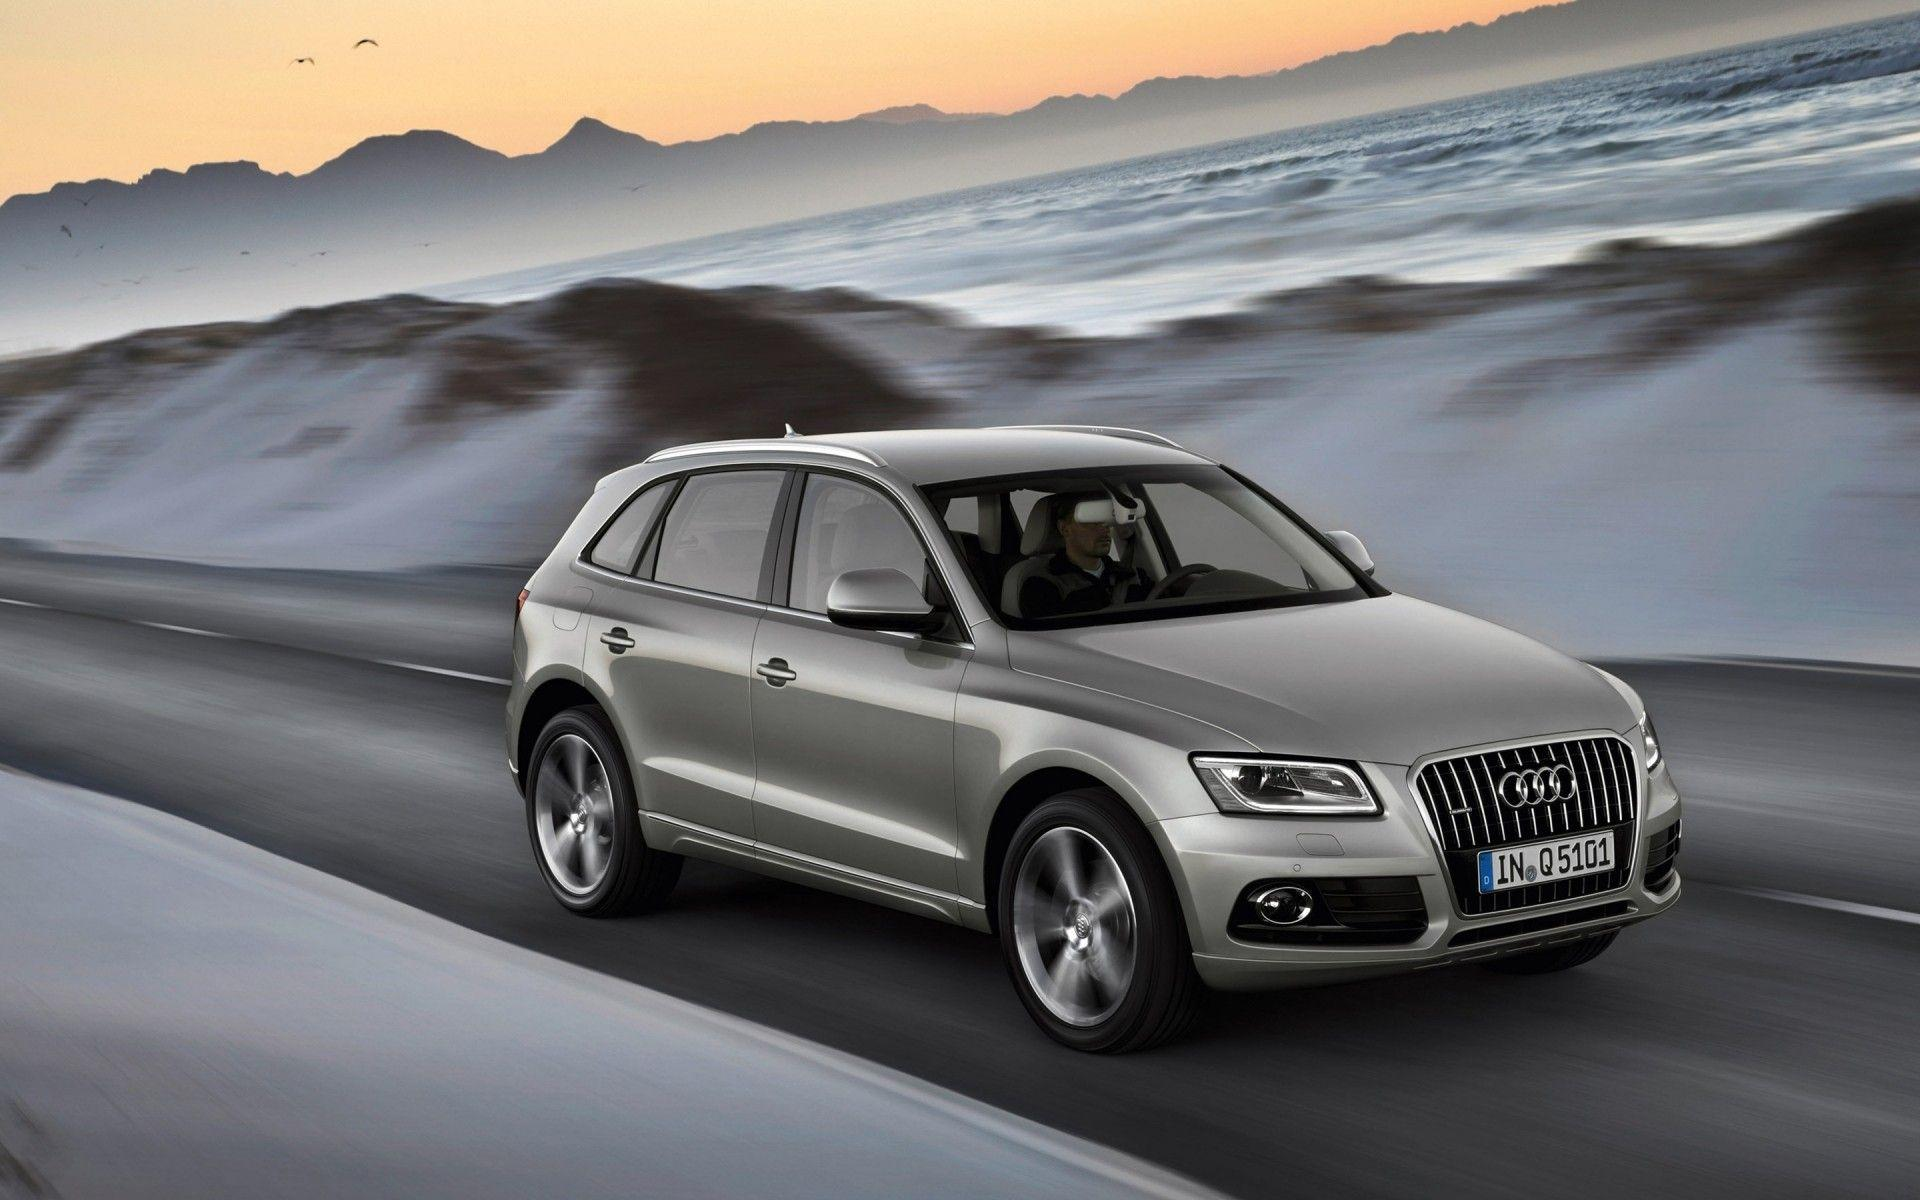 2013 Audi Q5. Android wallpapers for free